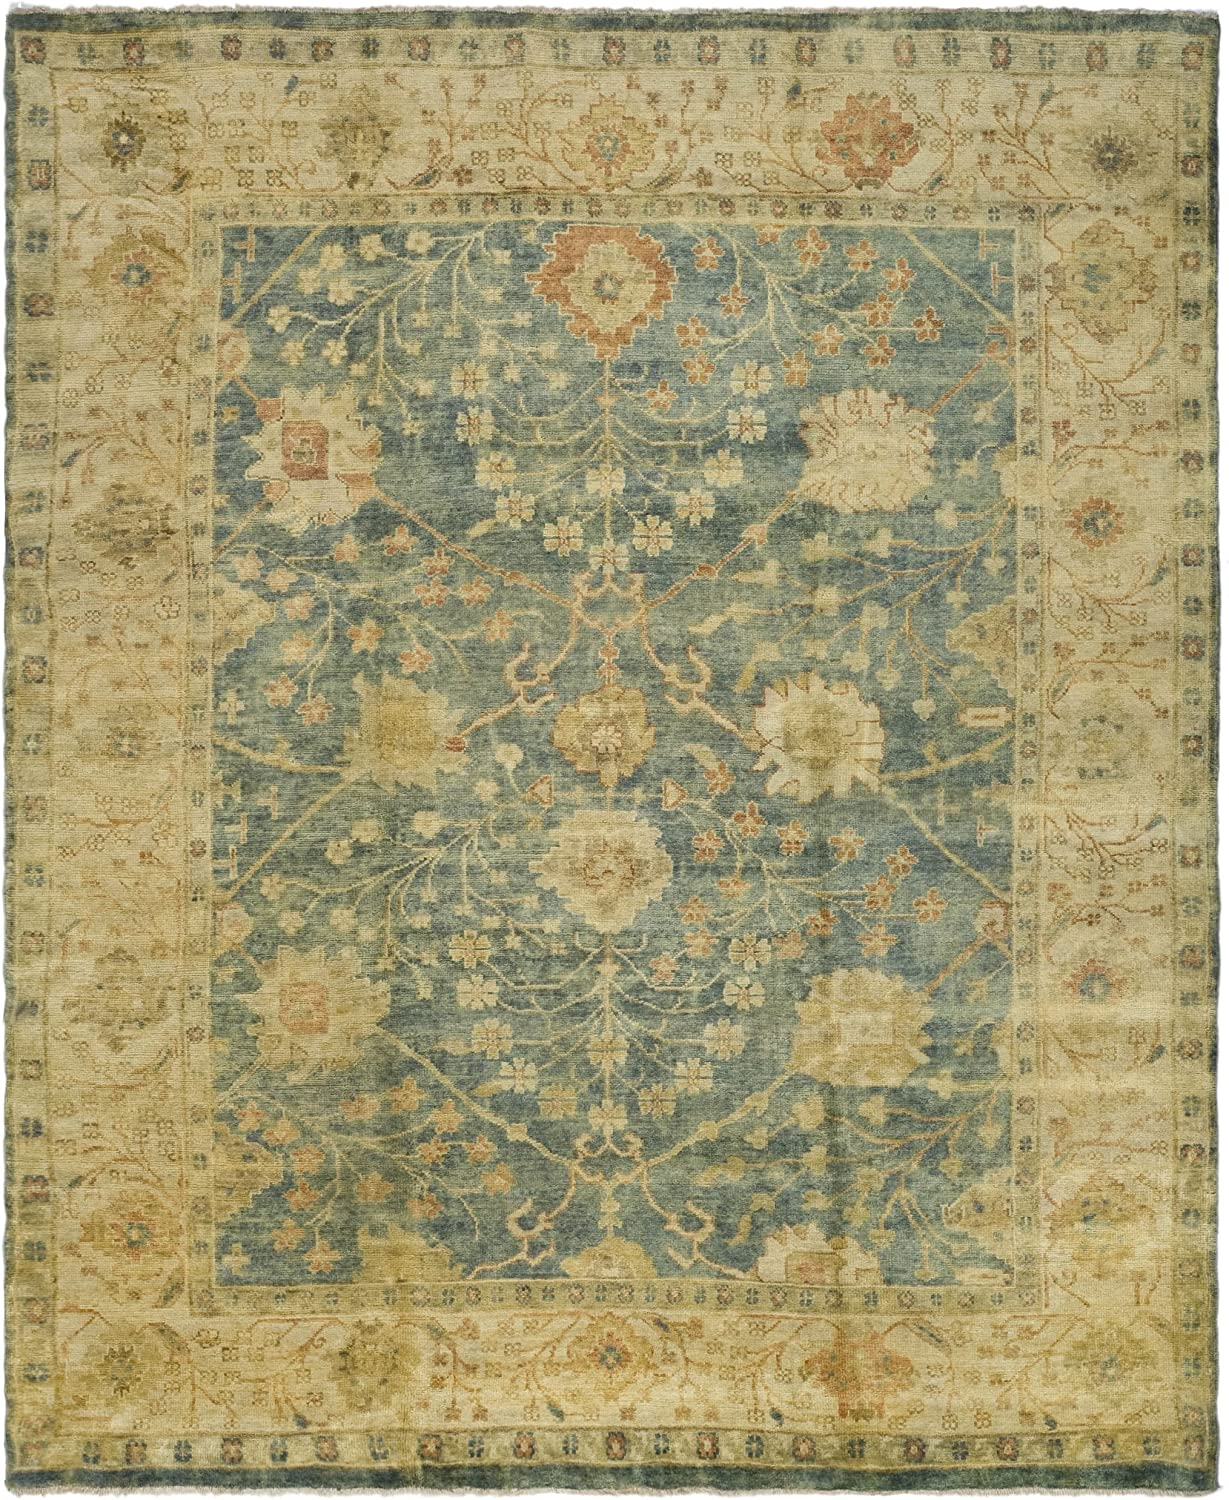 Amazon Com Safavieh Oushak Collection Osh117a Hand Knotted Traditional Oriental Premium Wool Area Rug 10 X 14 Medium Blue Green Furniture Decor